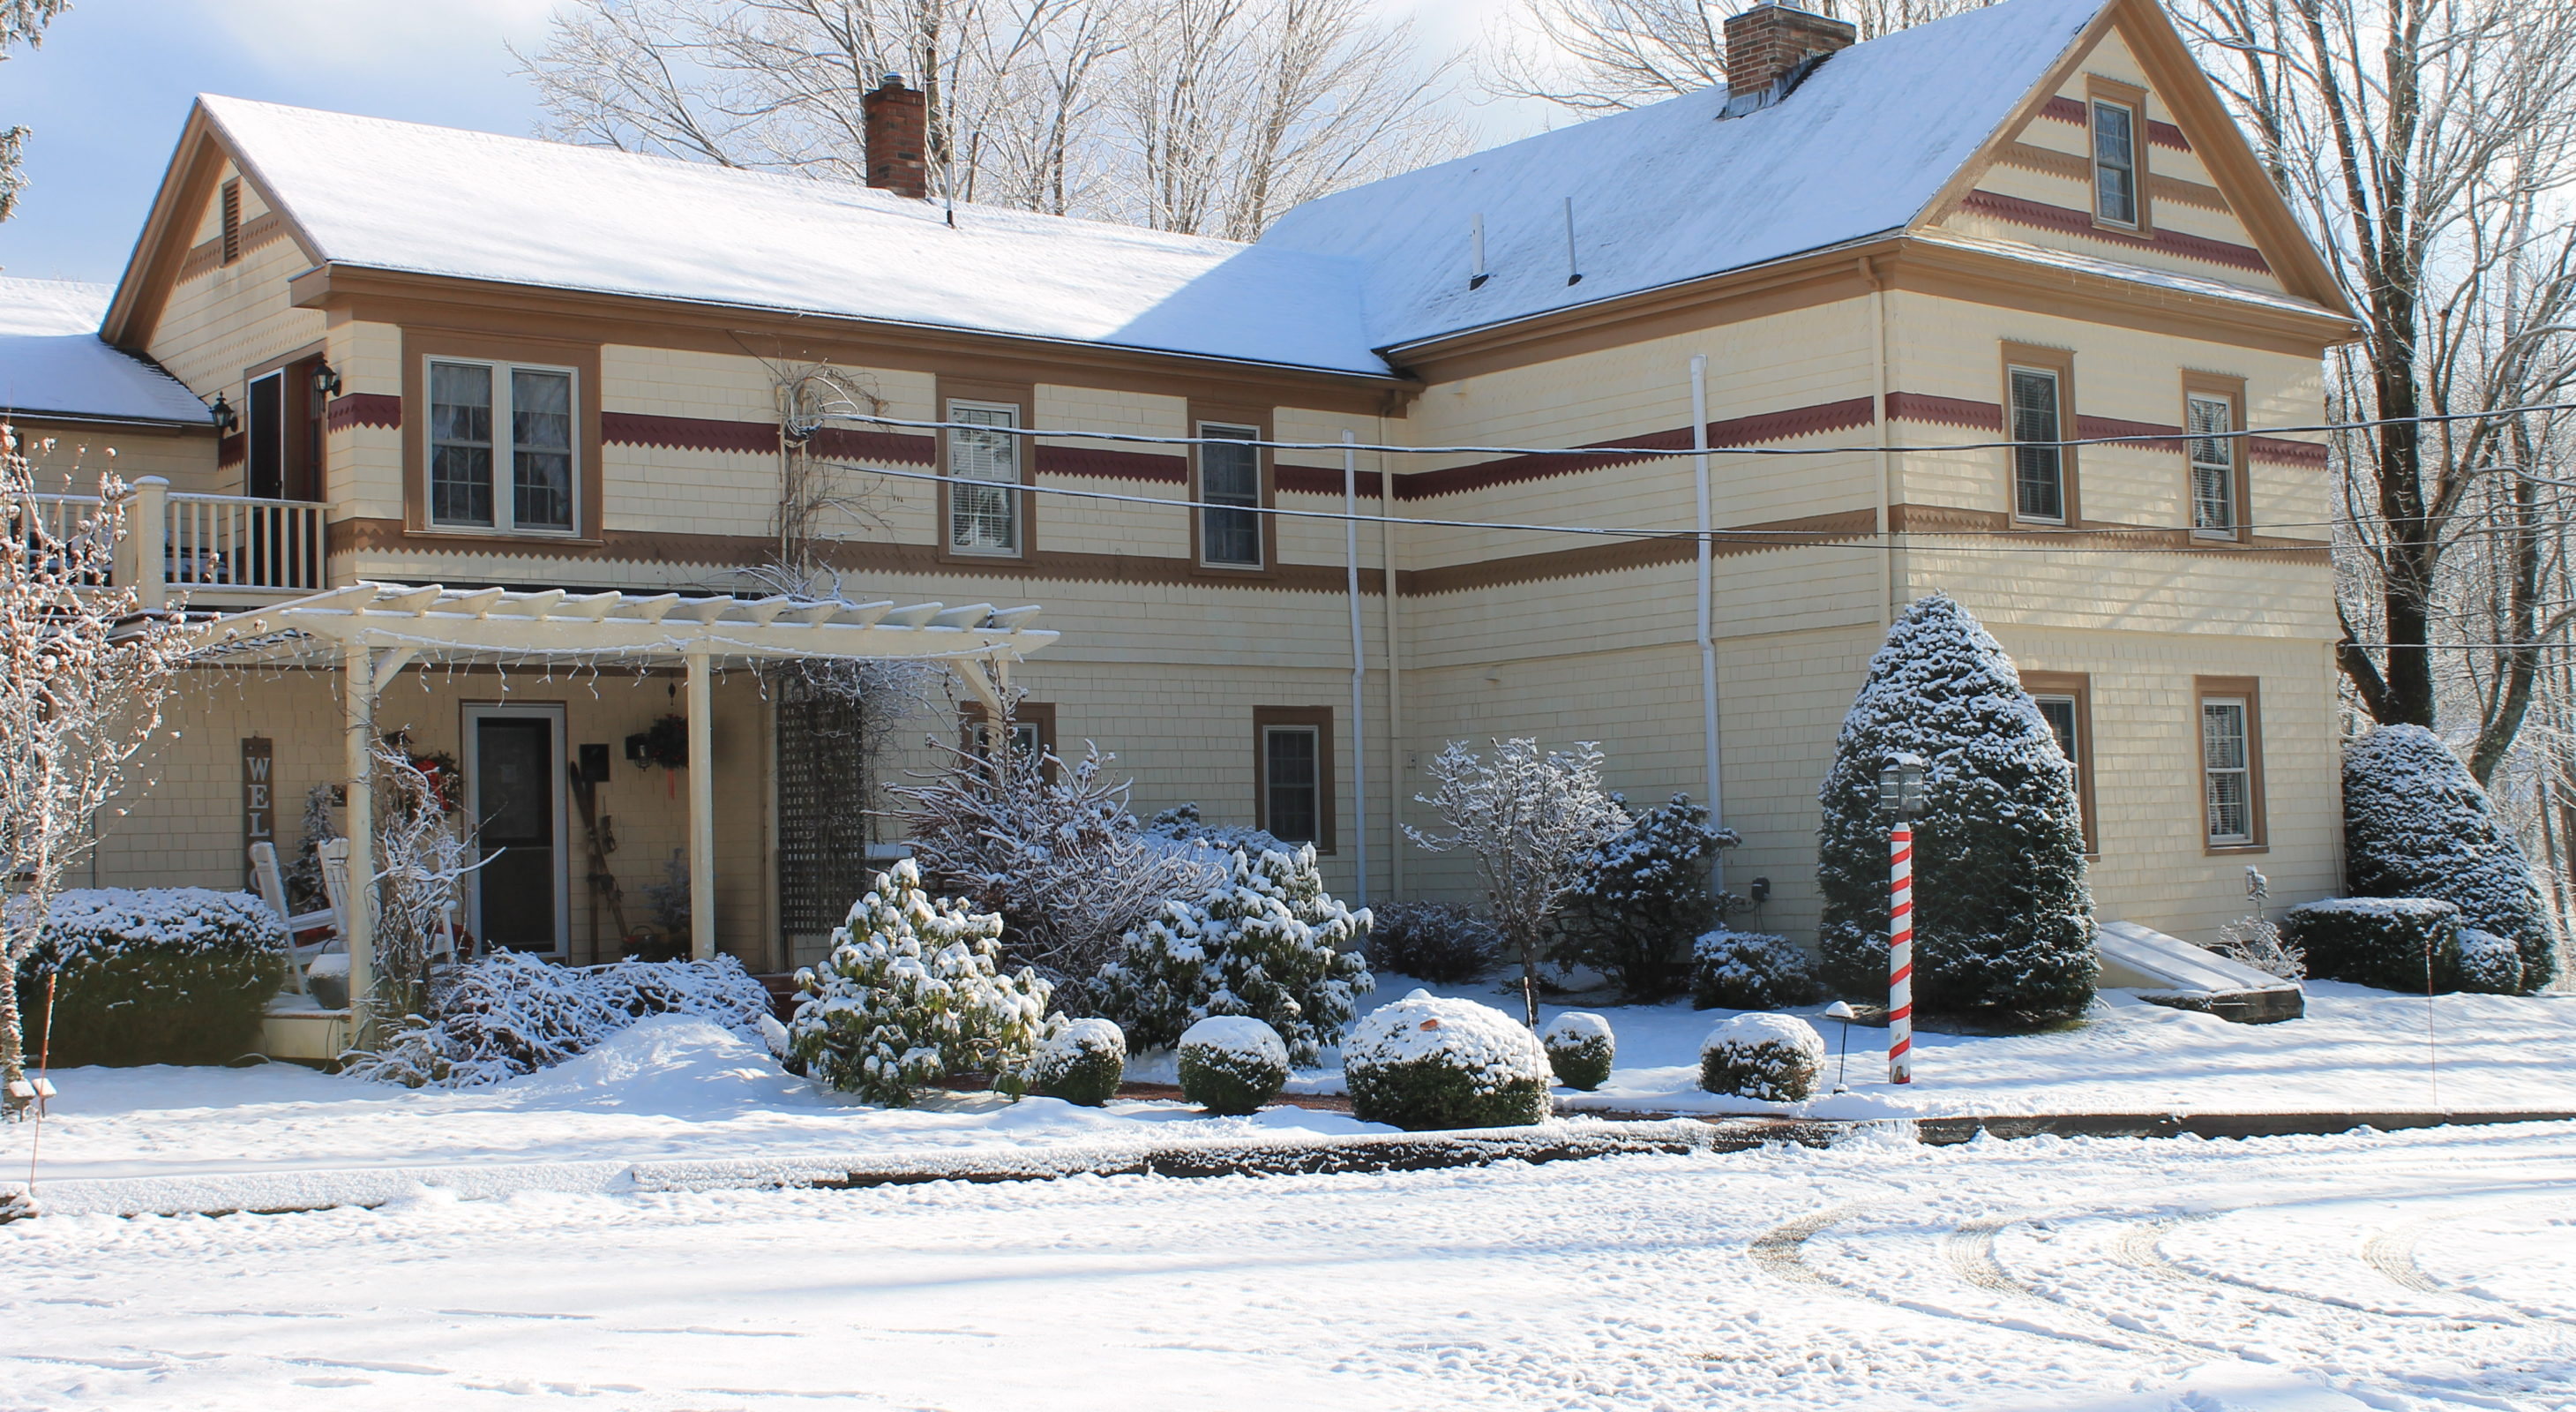 1802 House blanketed by snow